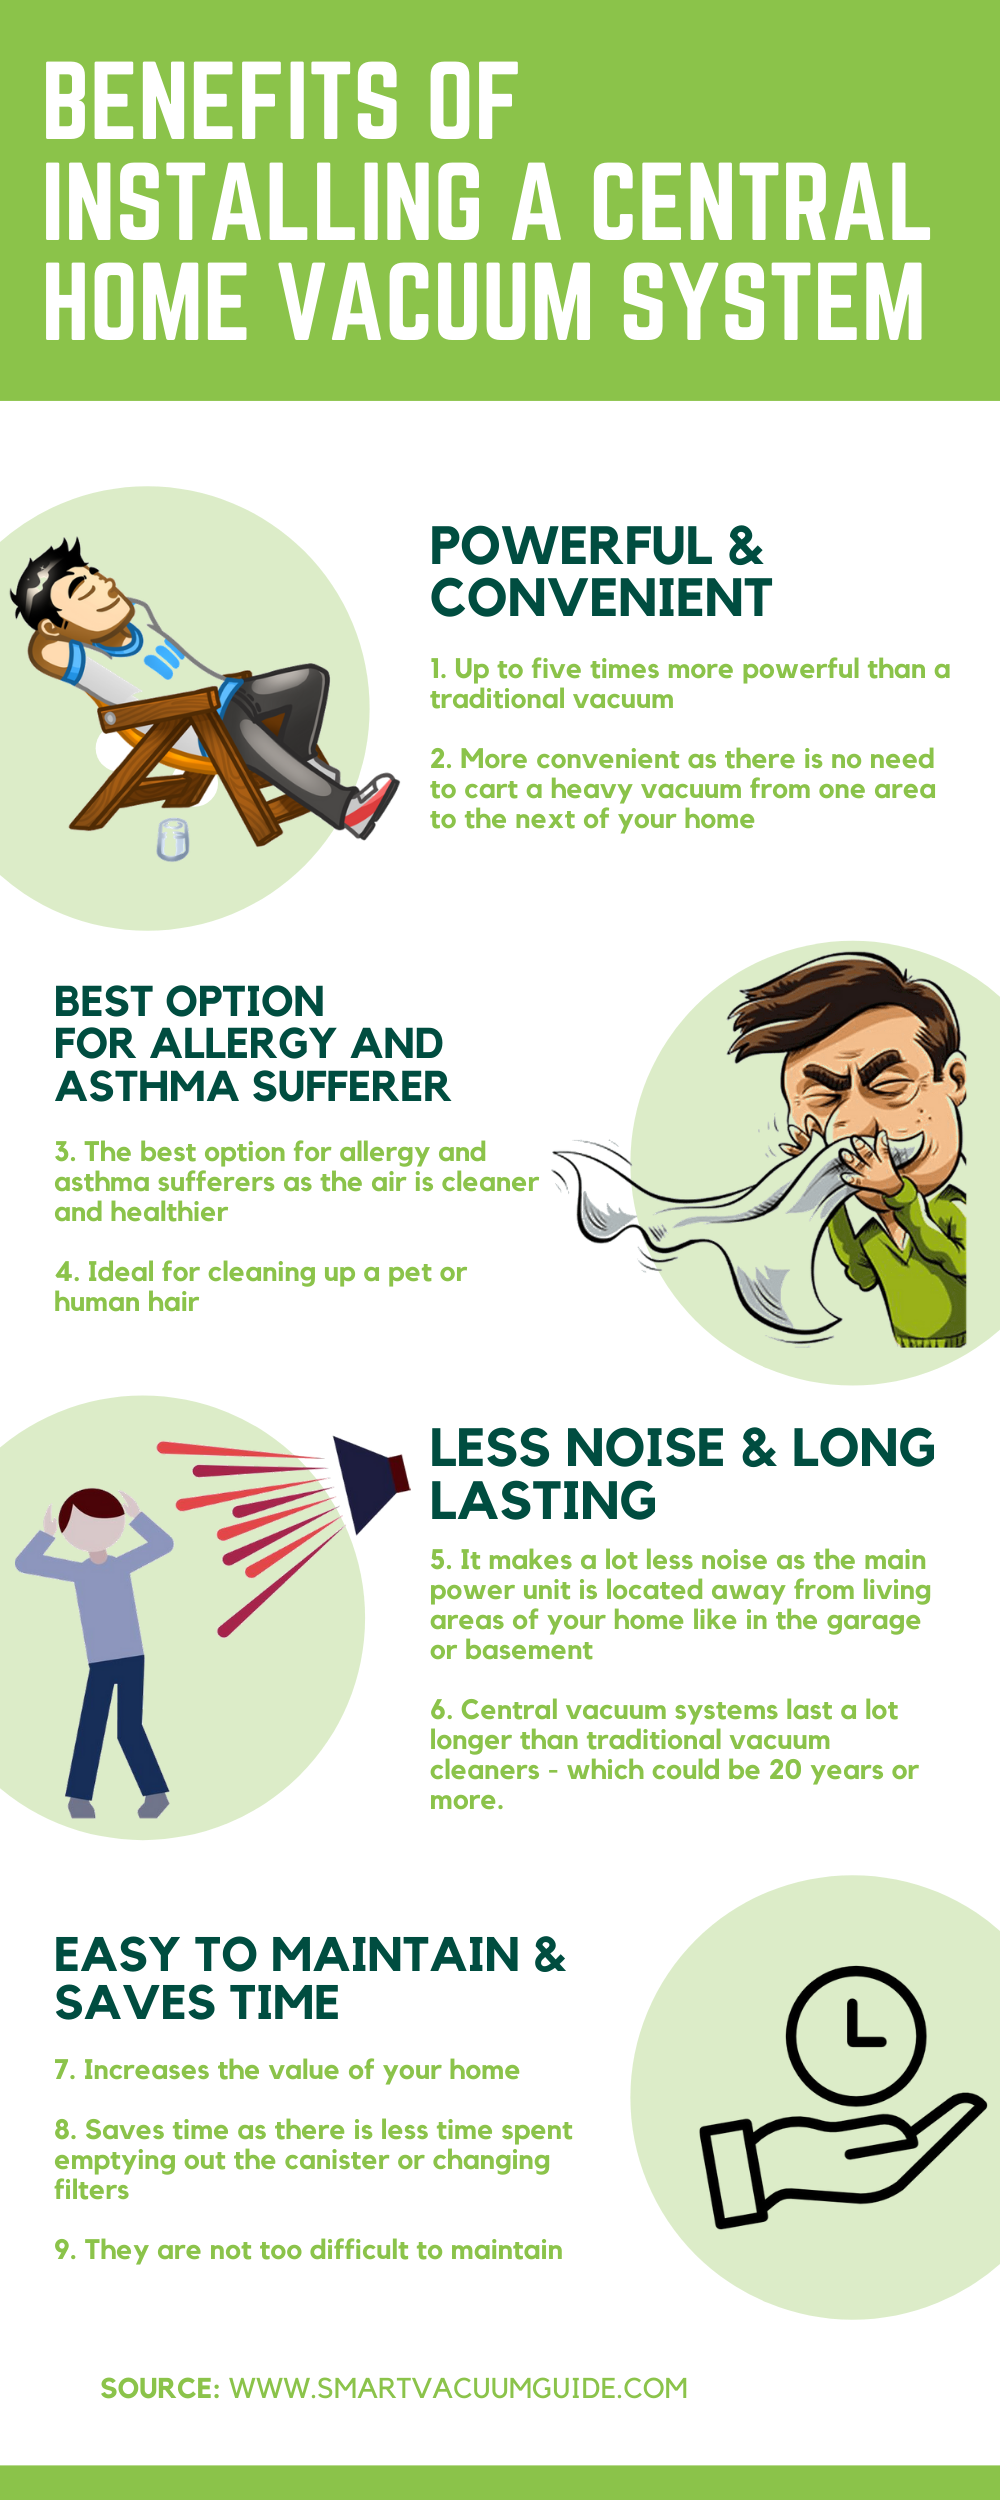 Infographic Benefits of installing a central home vacuum system